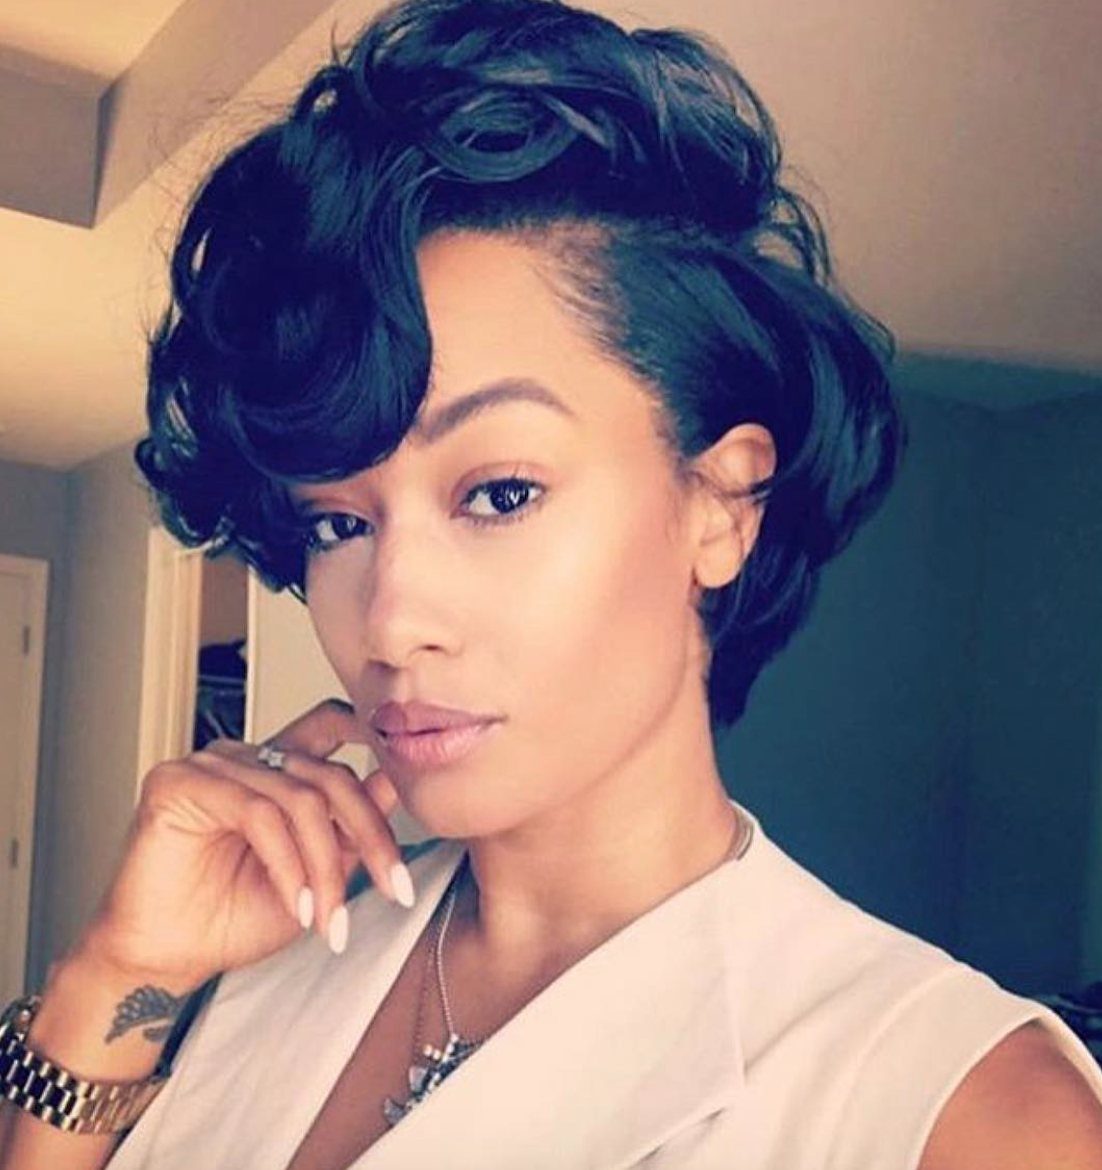 Pictures Of Short Black Hairstyles Delectable Beautiful Luvcrystalrenee  Httpsblackhairinformation